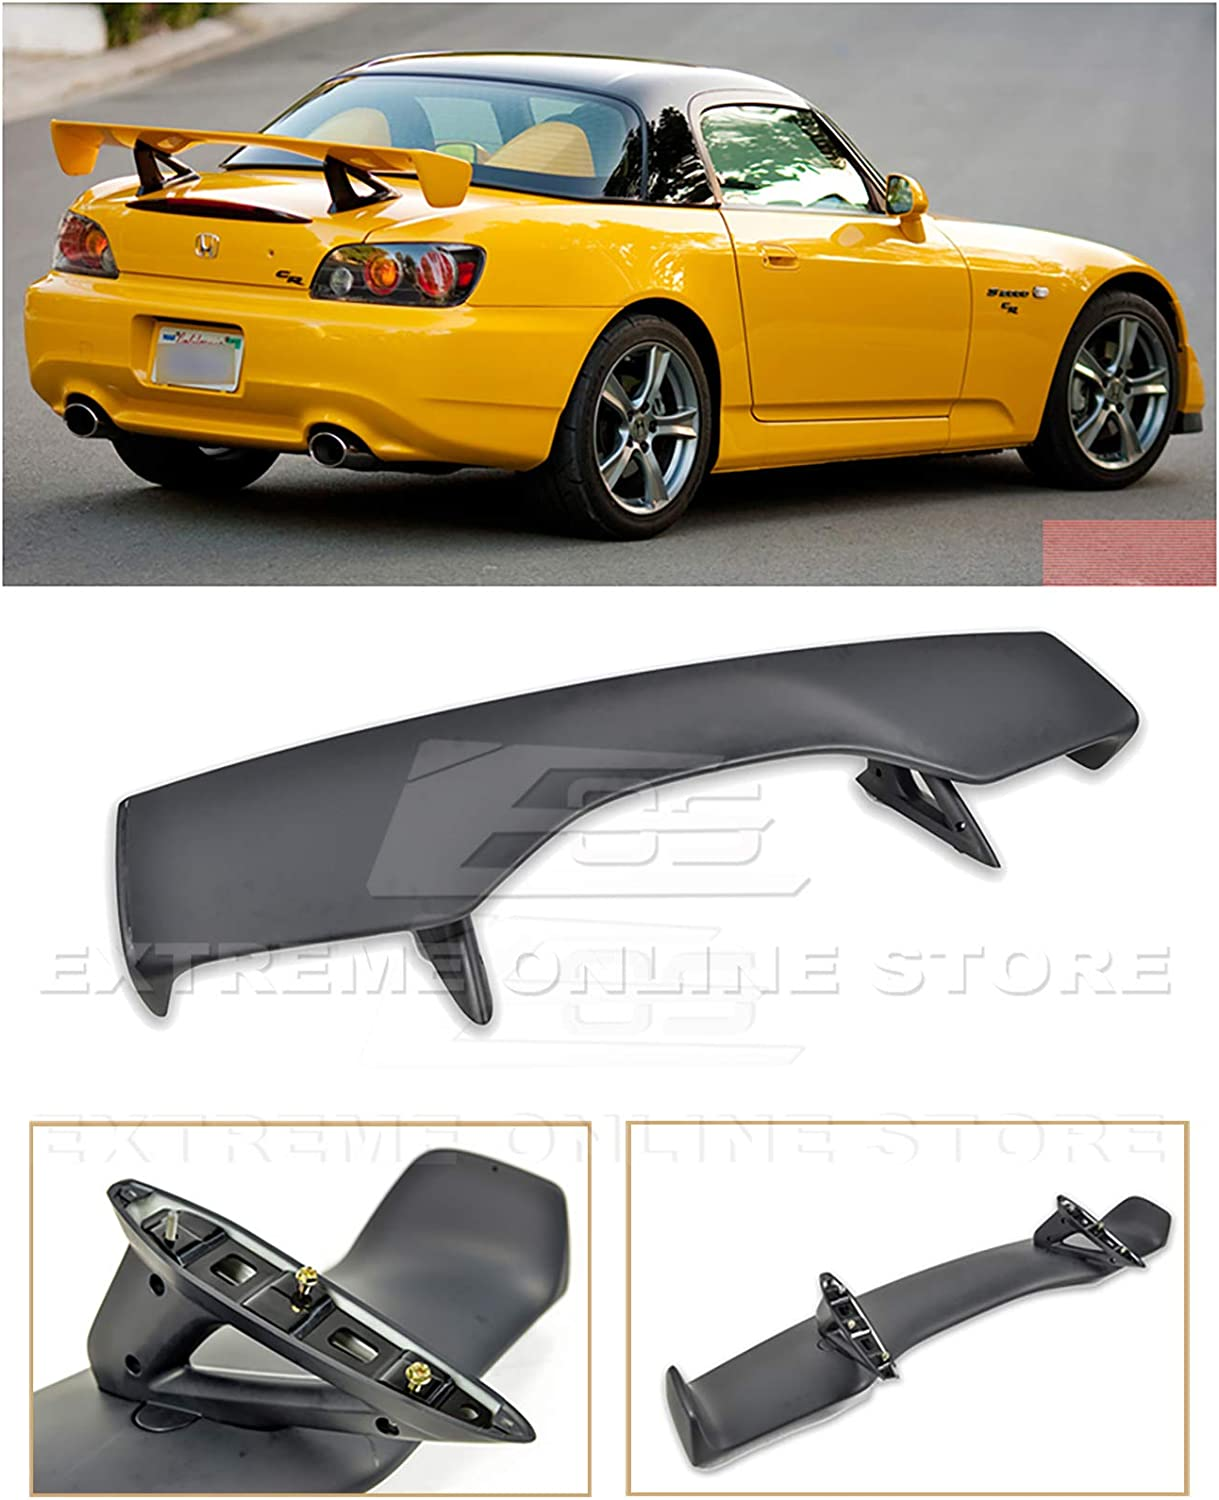 Extreme Online Store Replacement For 2000 2009 Honda S2000 Ap1 Ap2 Jdm Cr Style Abs Plastic Primer Black Rear Trunk Lid Wing Spoiler Automotive